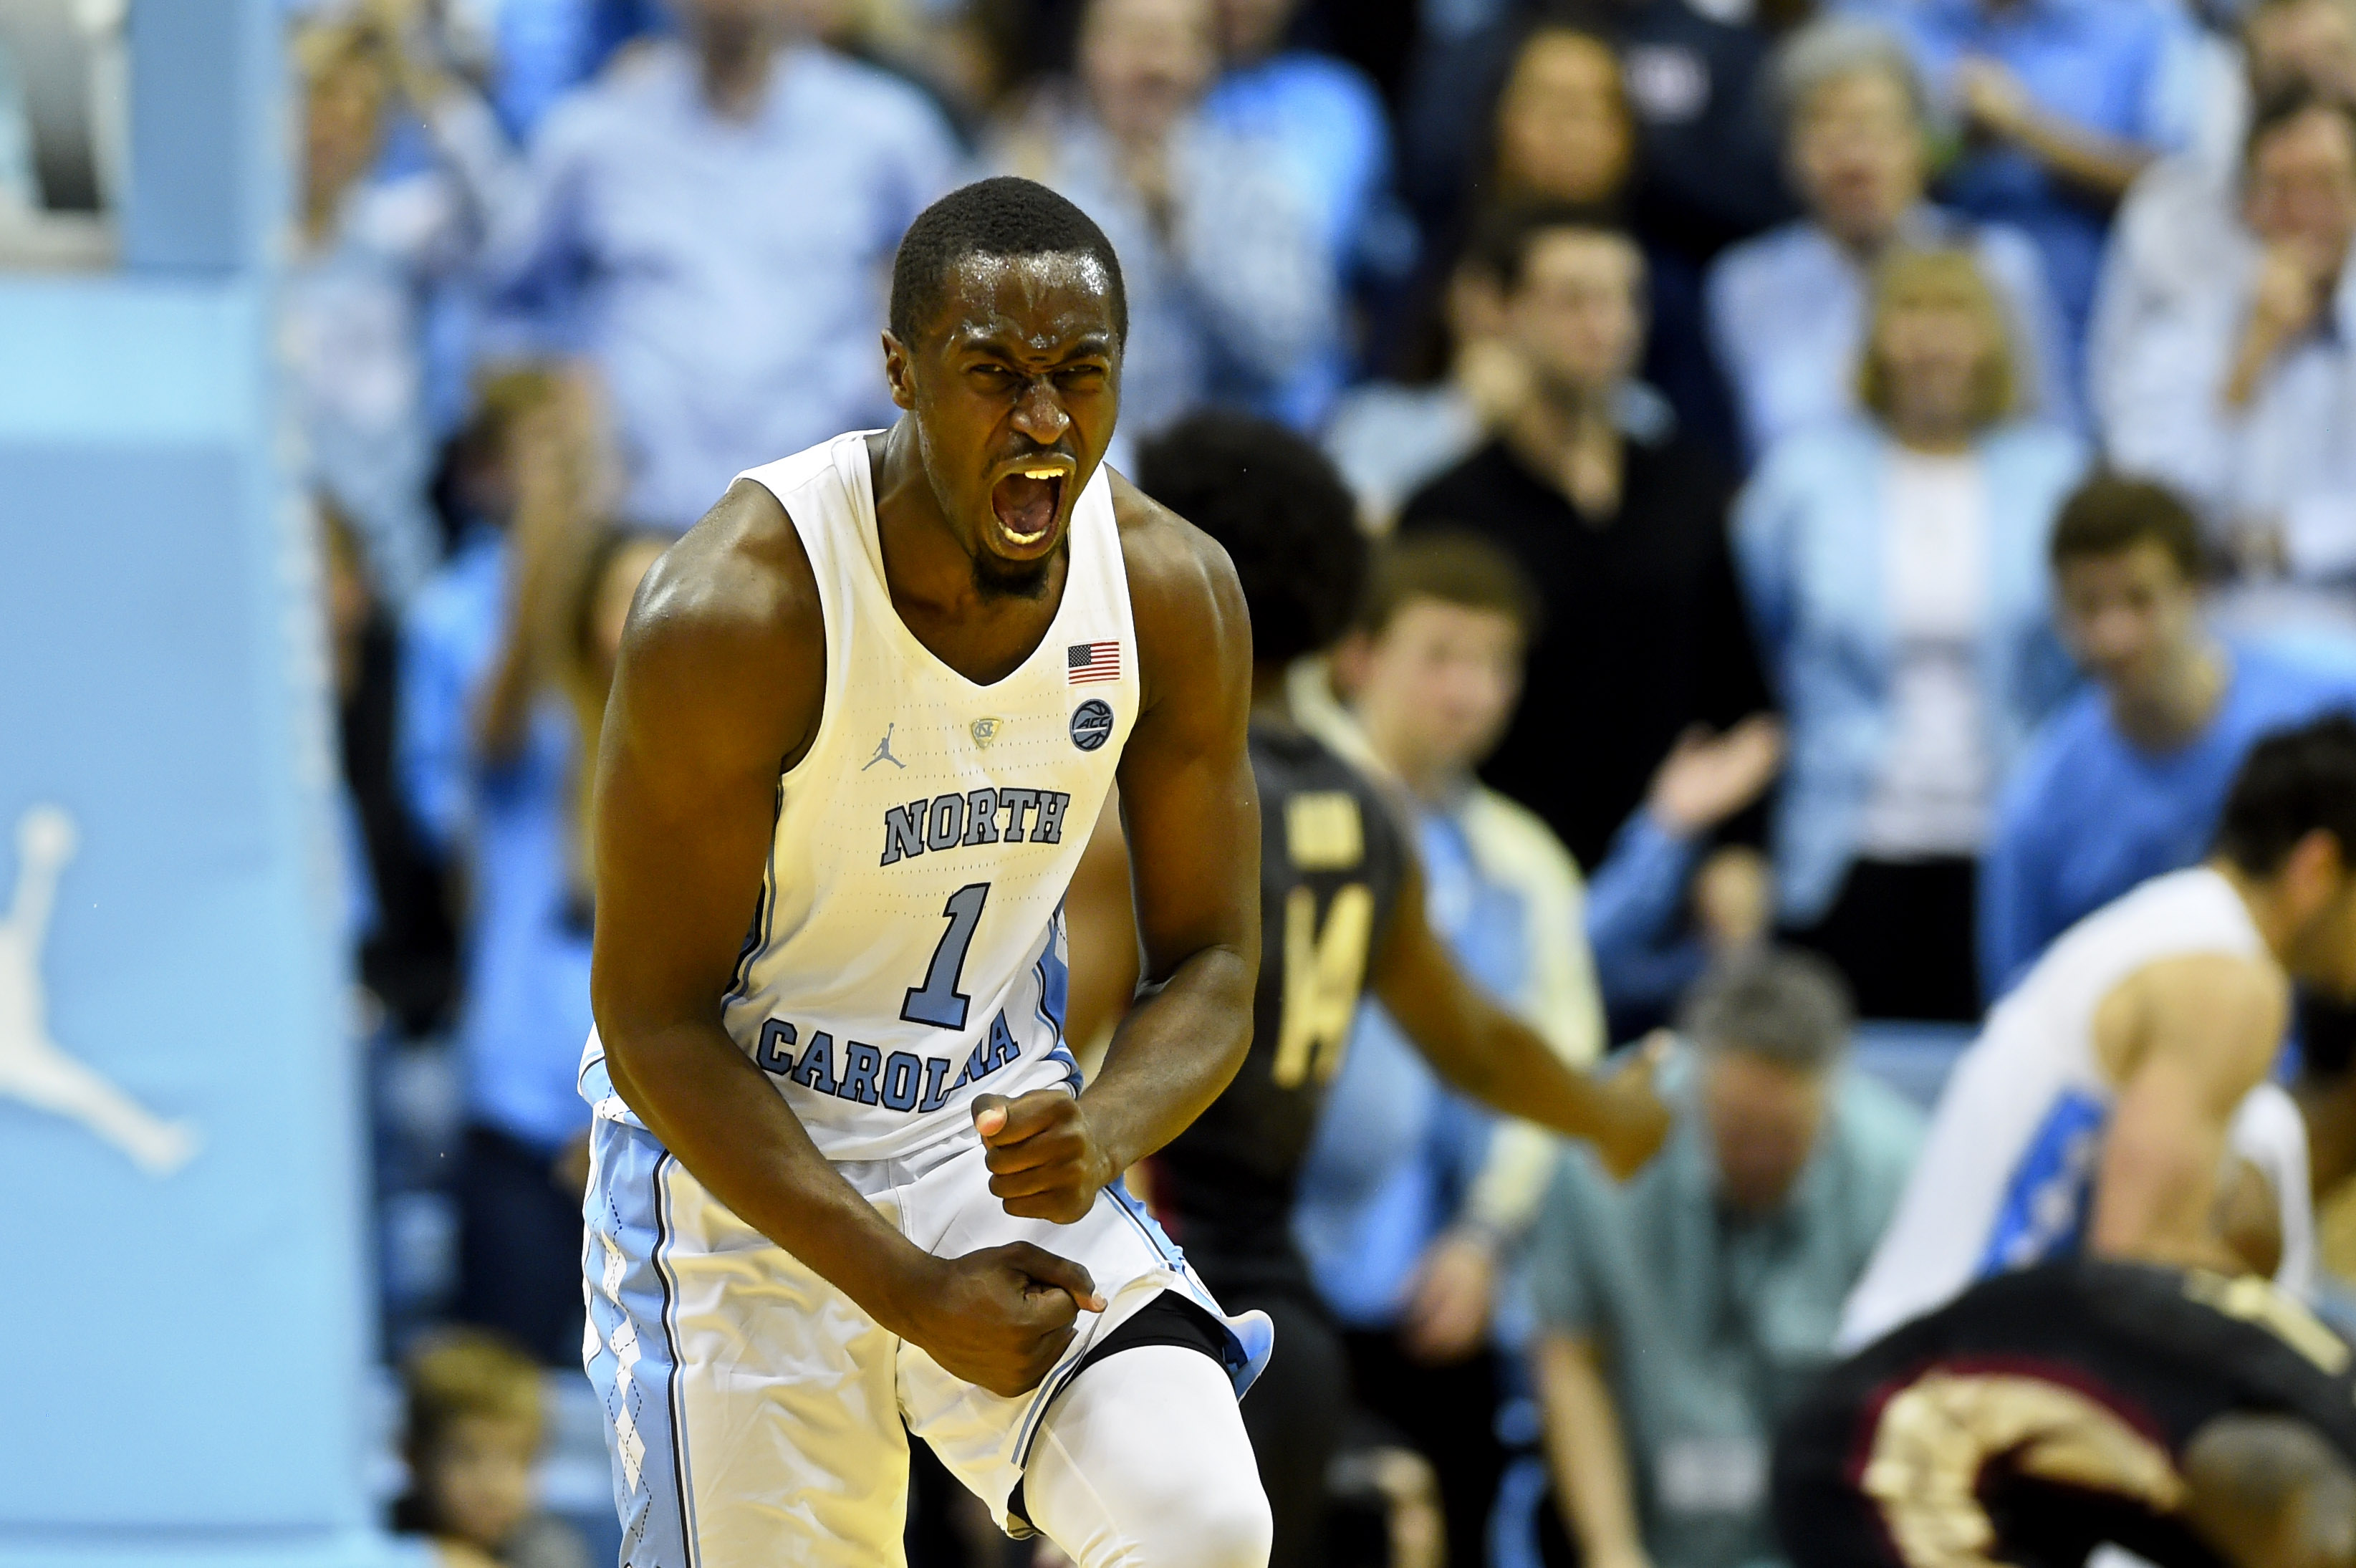 UNC Basketball: Theo Pinson to play against Duke